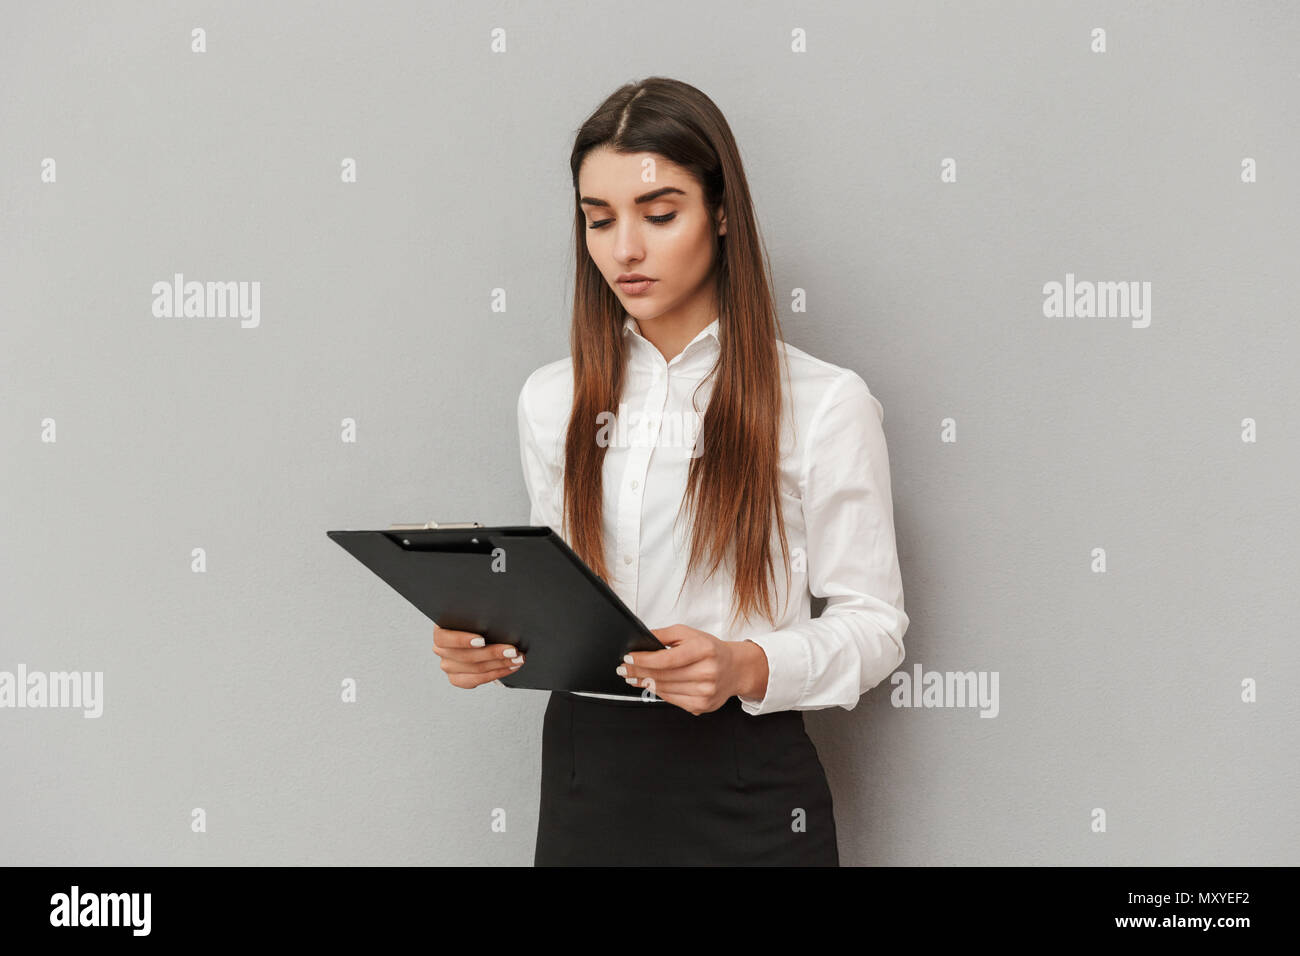 Photo of serious woman in white shirt and black skirt holding clipboard with documents in office isolated over gray background - Stock Image